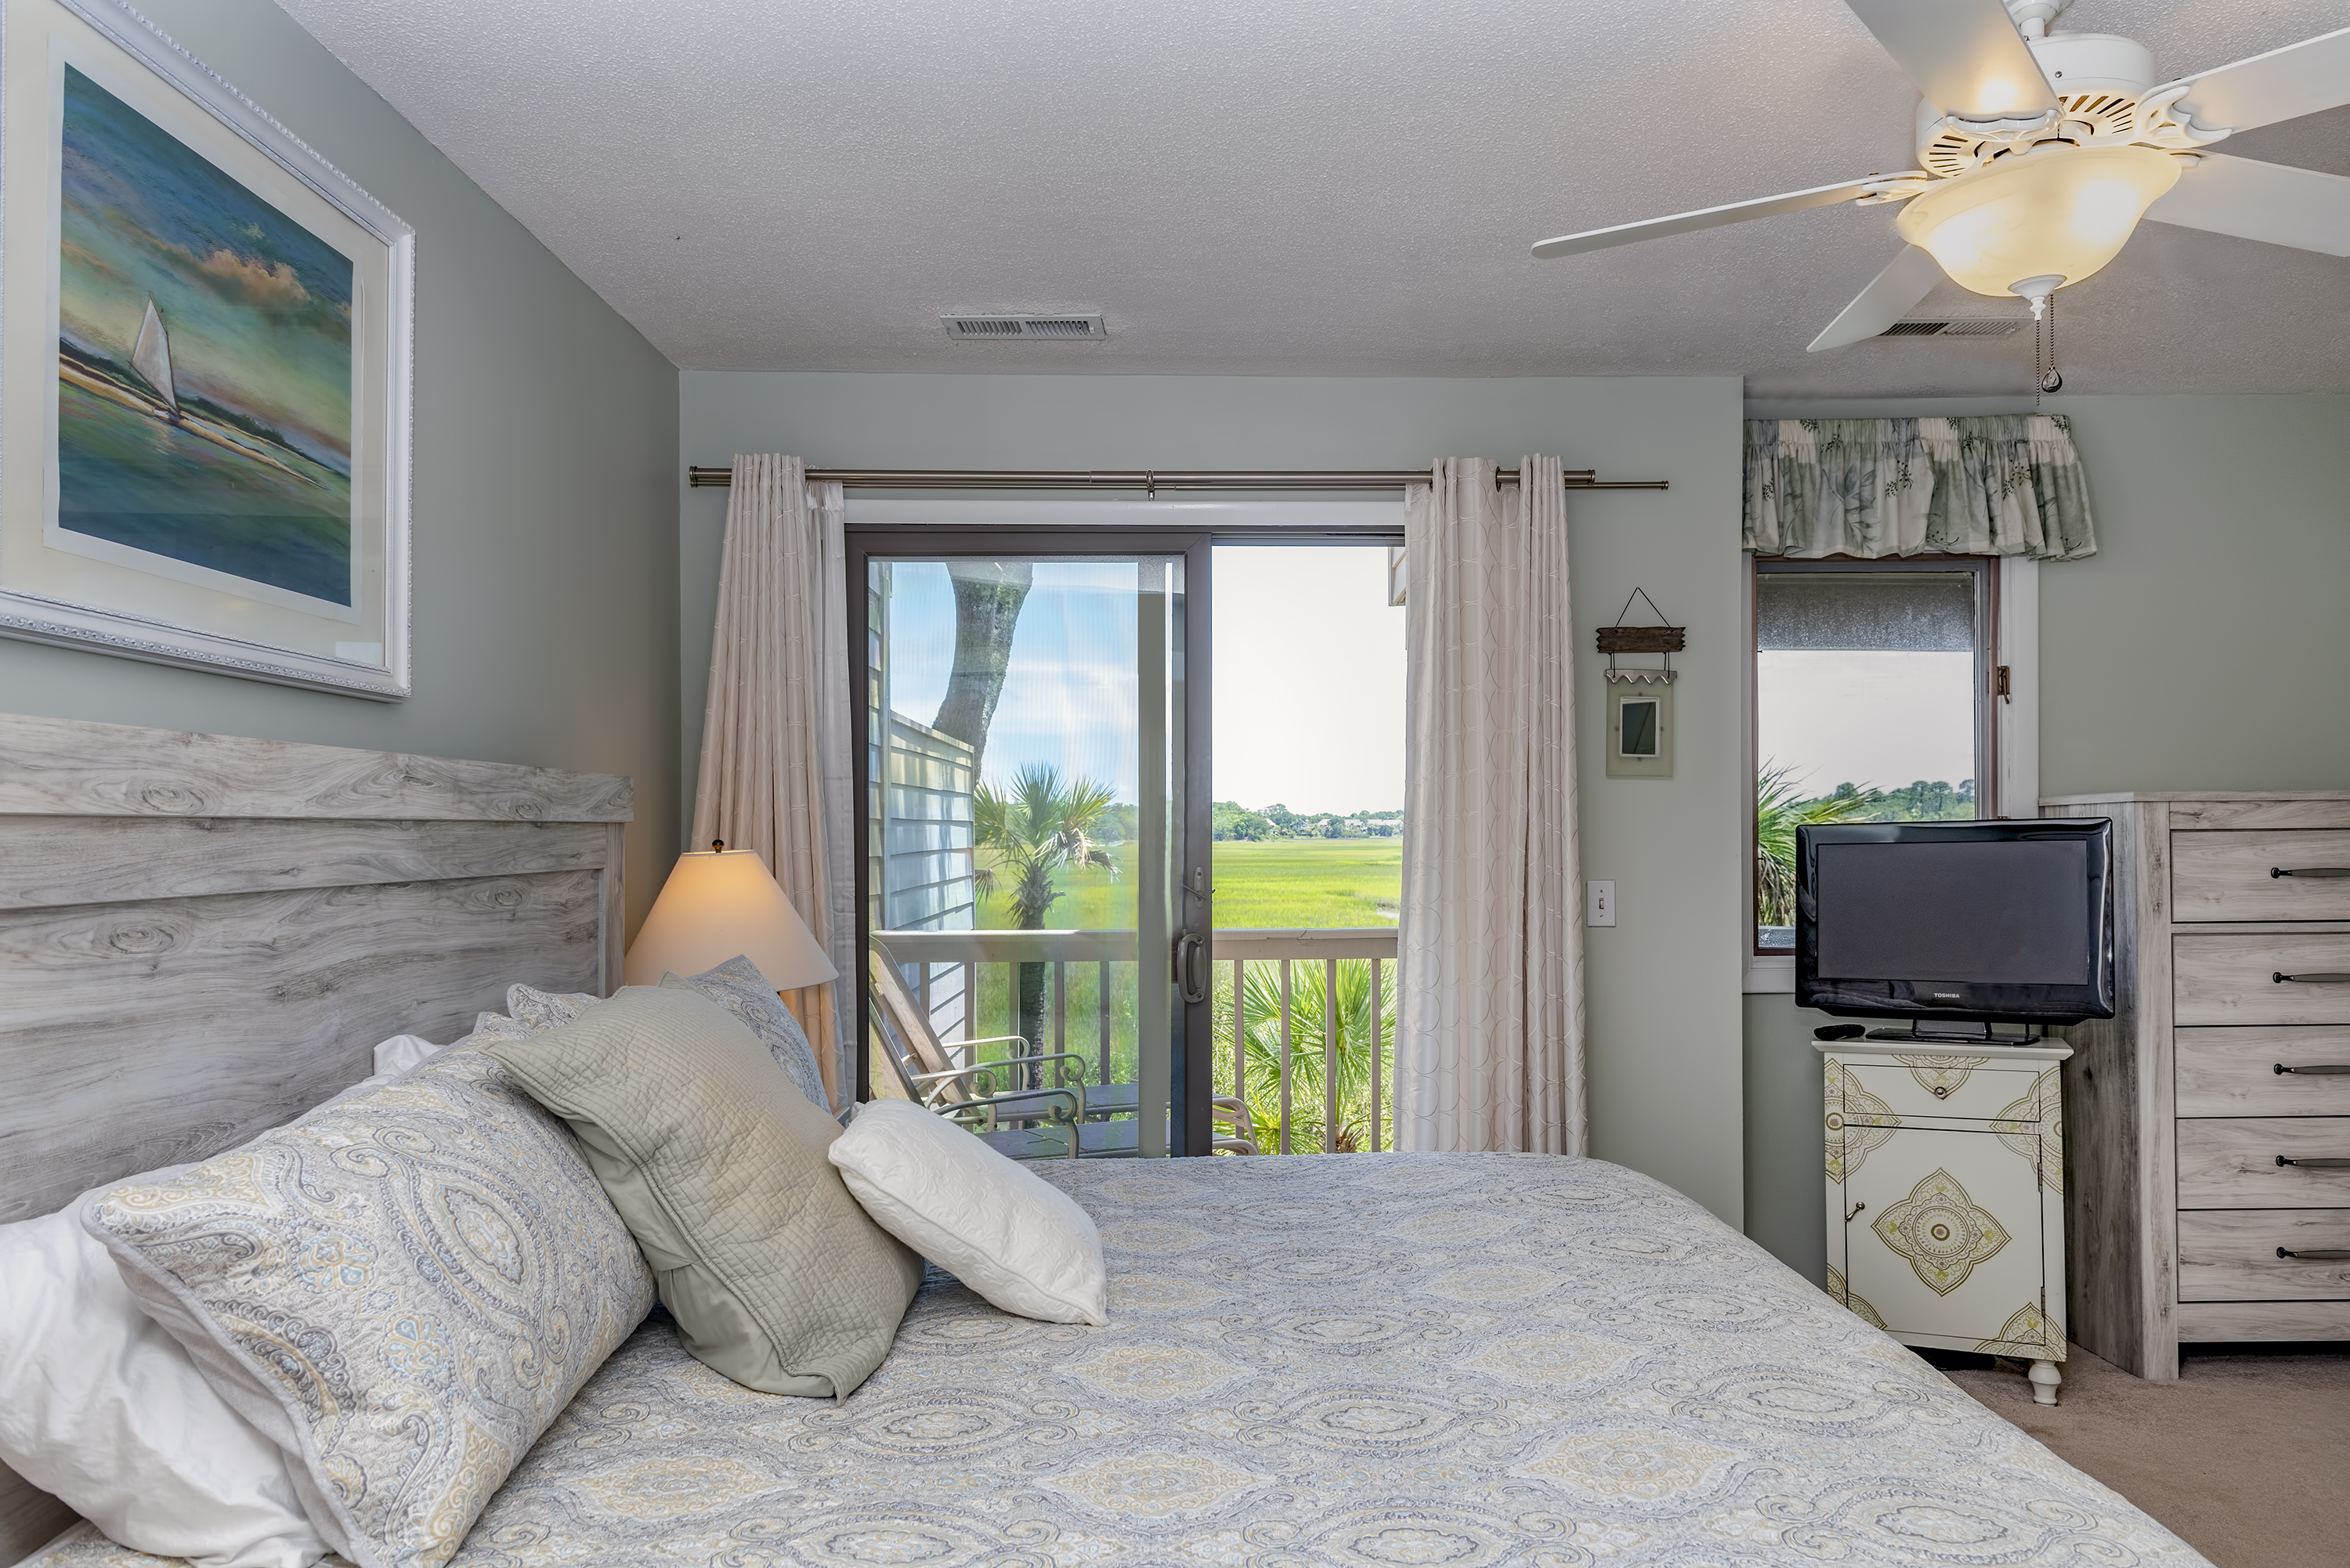 Private deck access from the master bedroom - this bedroom is completely private to the outside world!